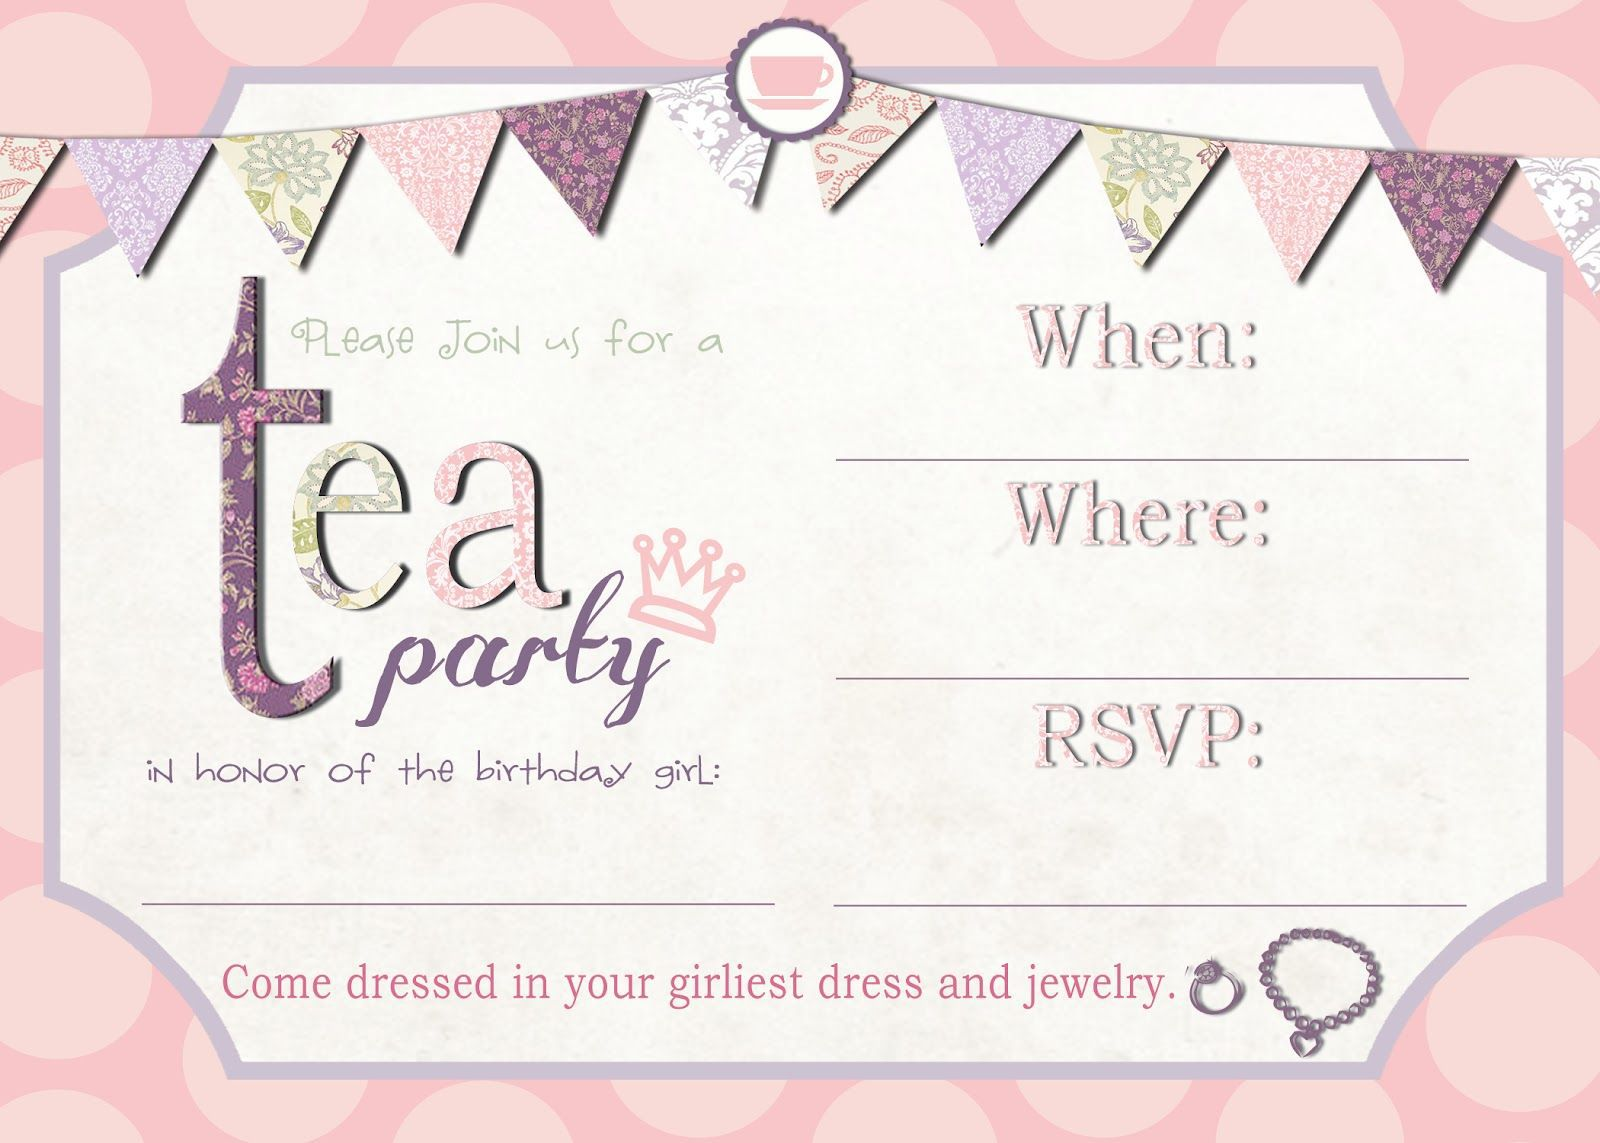 001 Awful Tea Party Invitation Template High Resolution  Templates Free Download Bridal ShowerFull